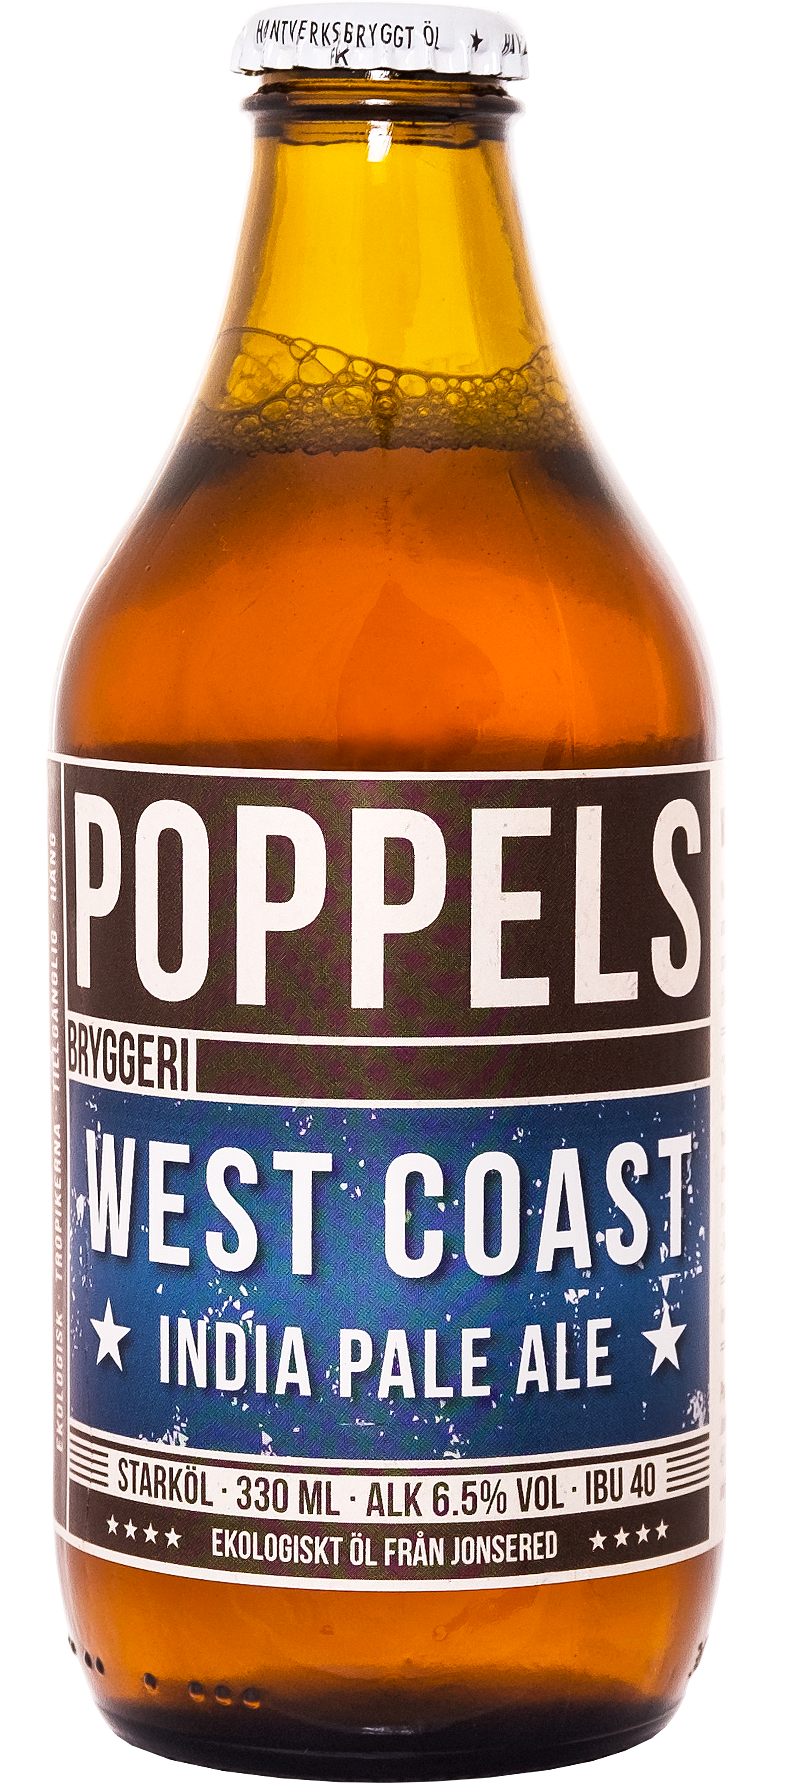 WEST COAST INDIA PALE ALE 6.5% -